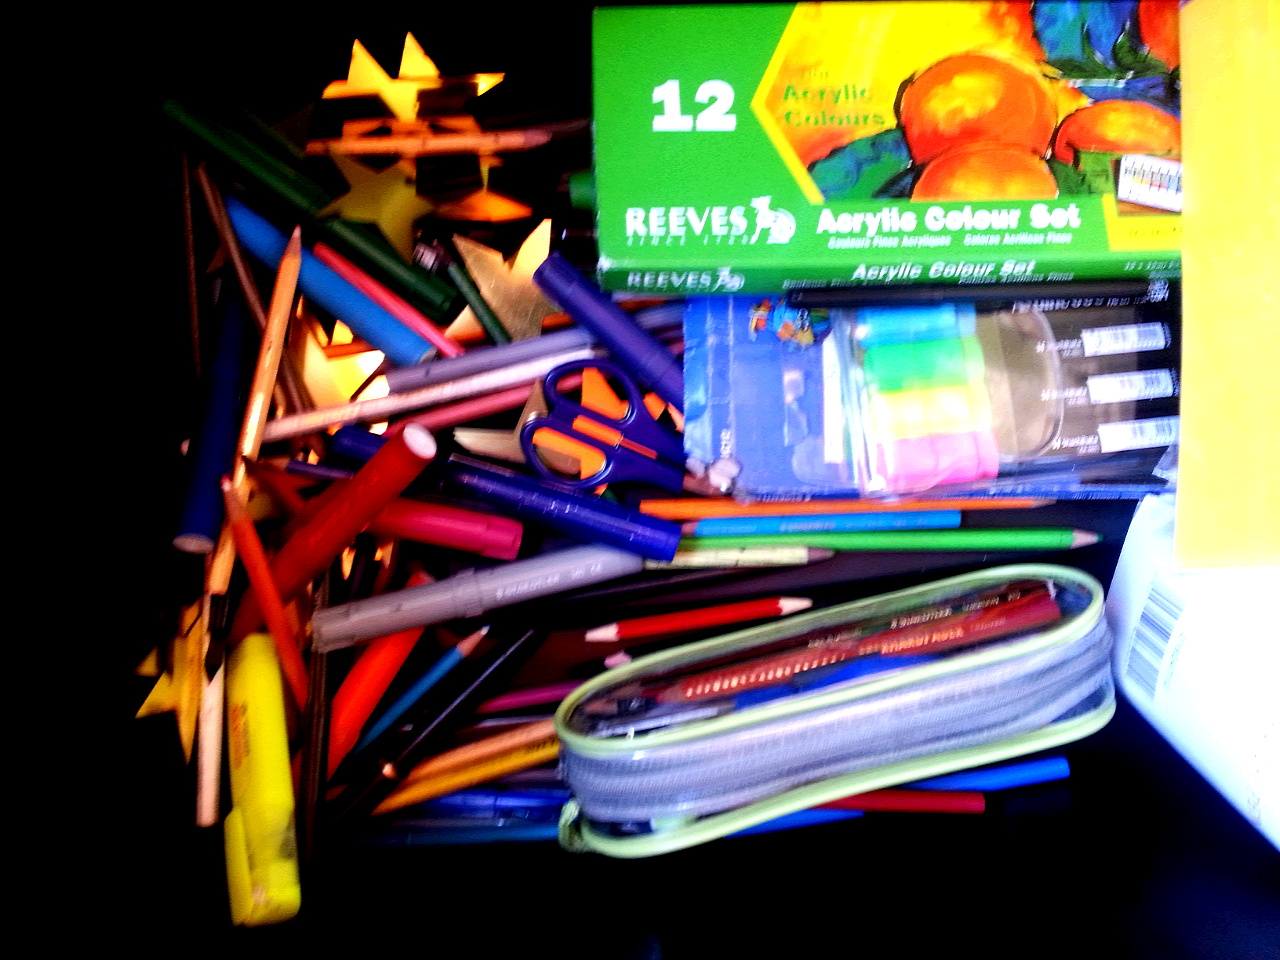 Image of Pens and Pencils